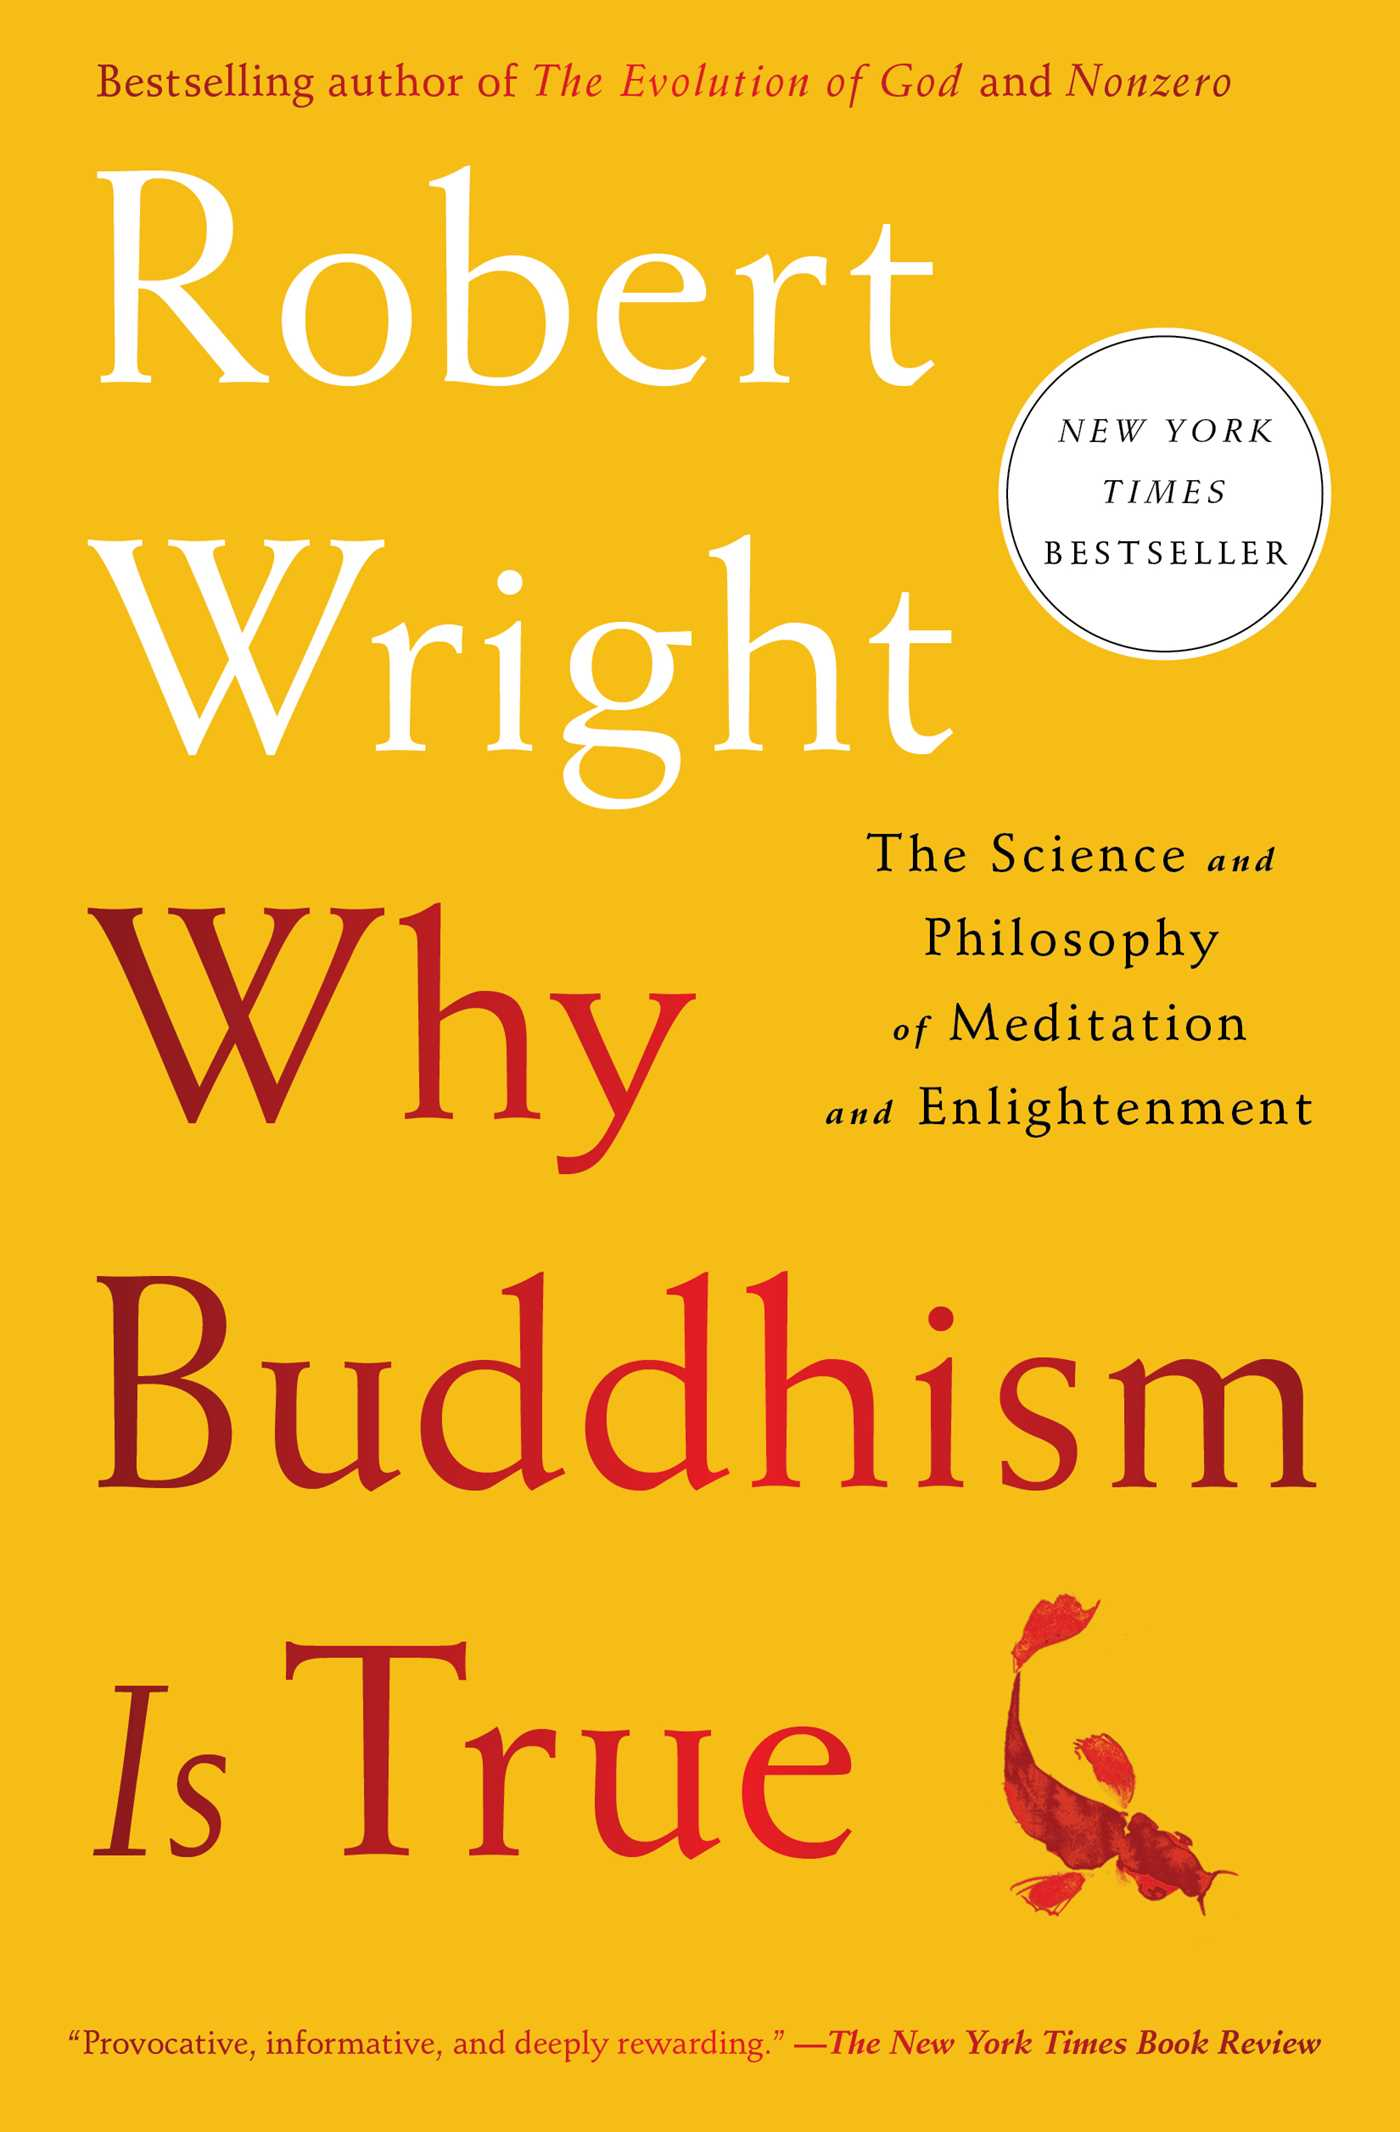 Why buddhism is true 9781439195468 hr